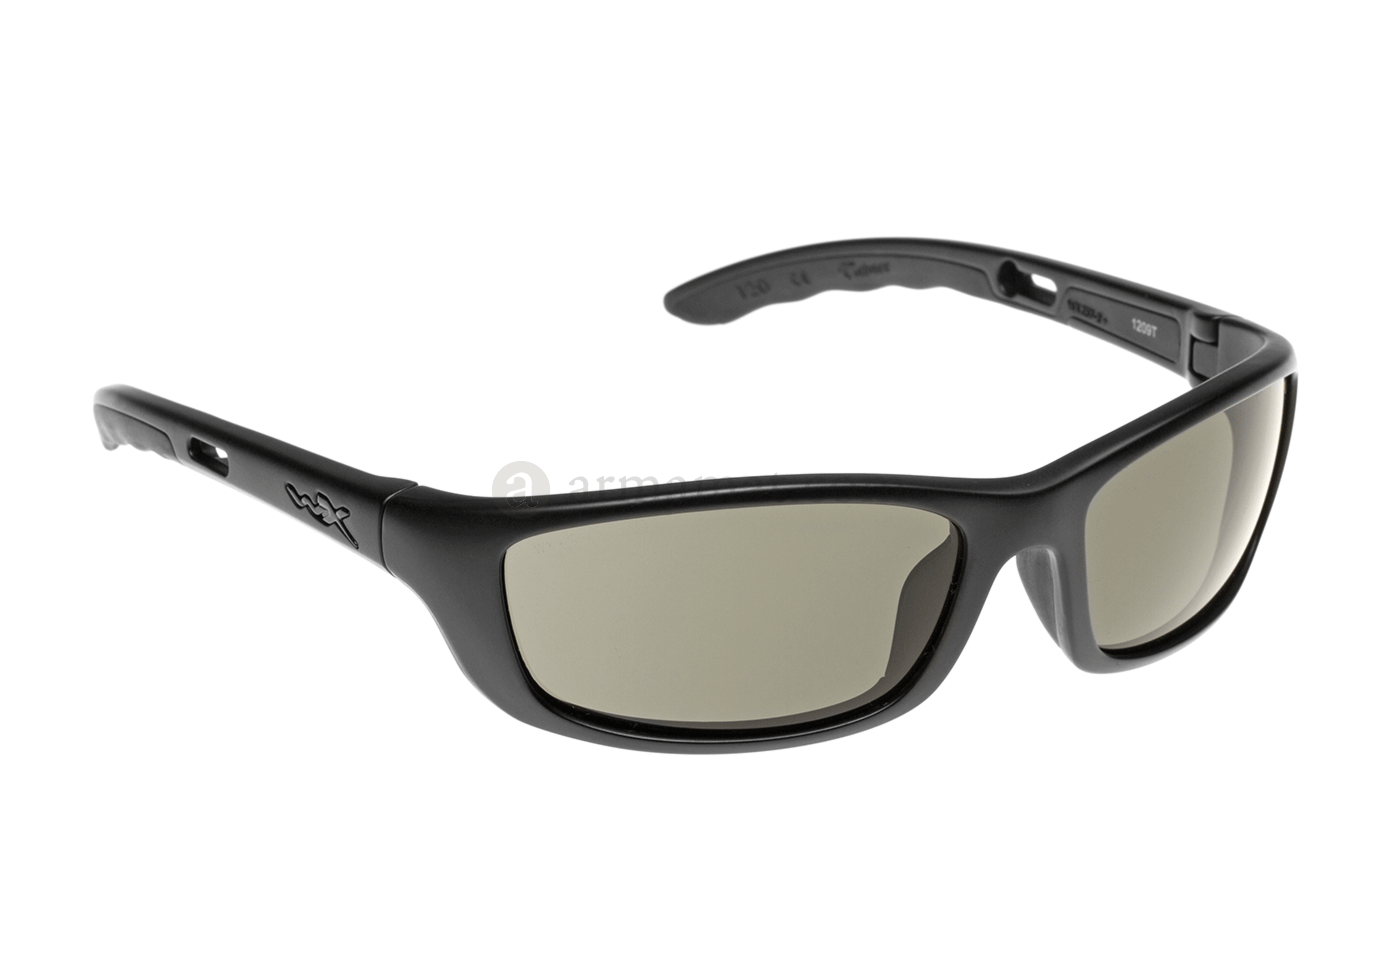 7a9c5145e4a Black Ops P-17 Black (Wiley X) - Glasses - Eyewear - Protective ...